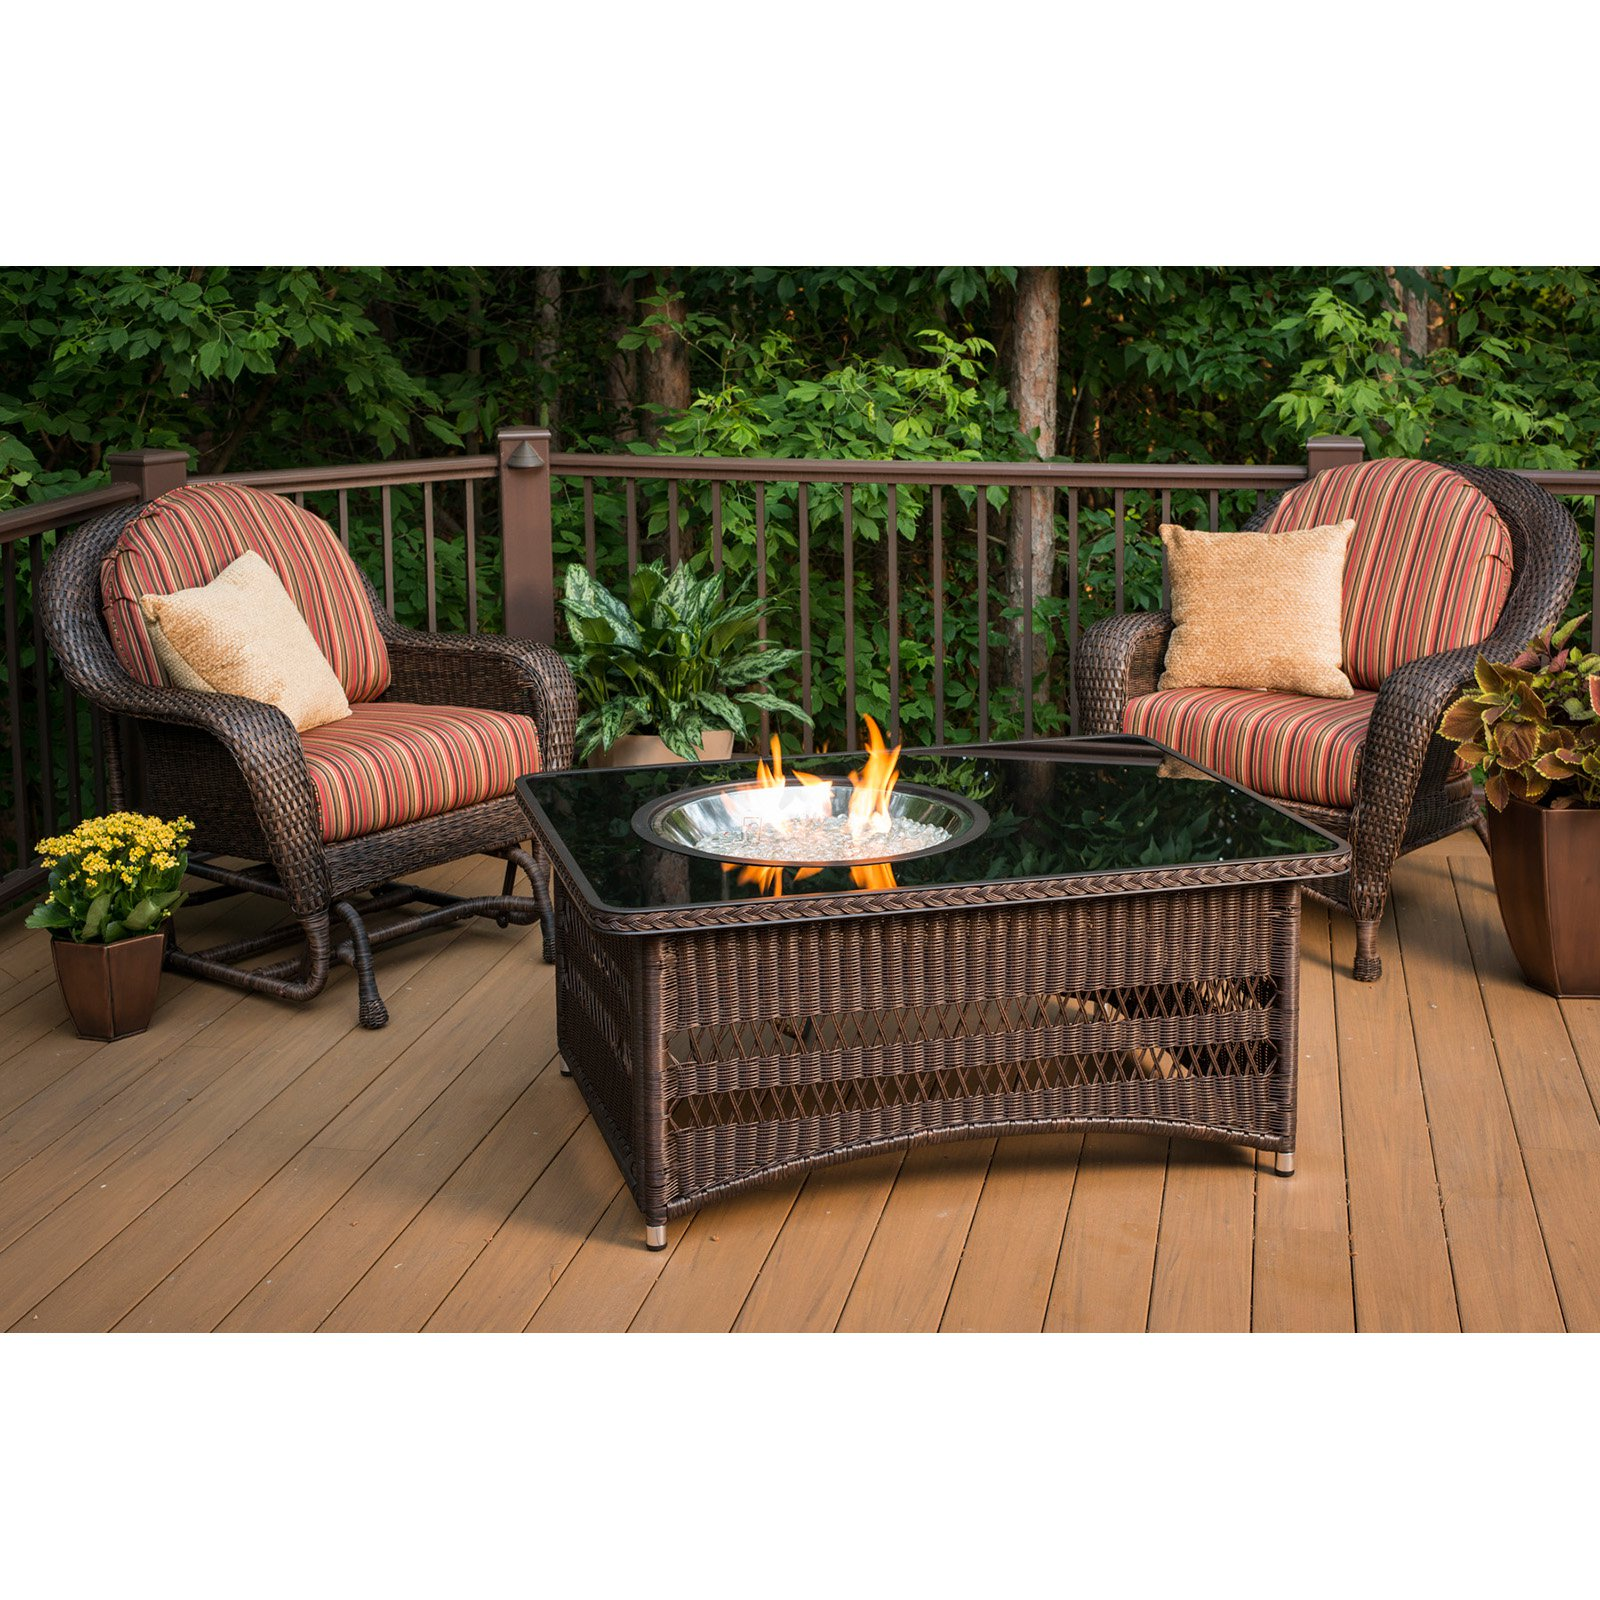 Outdoor GreatRoom Naples Fire Pit Table Walmart